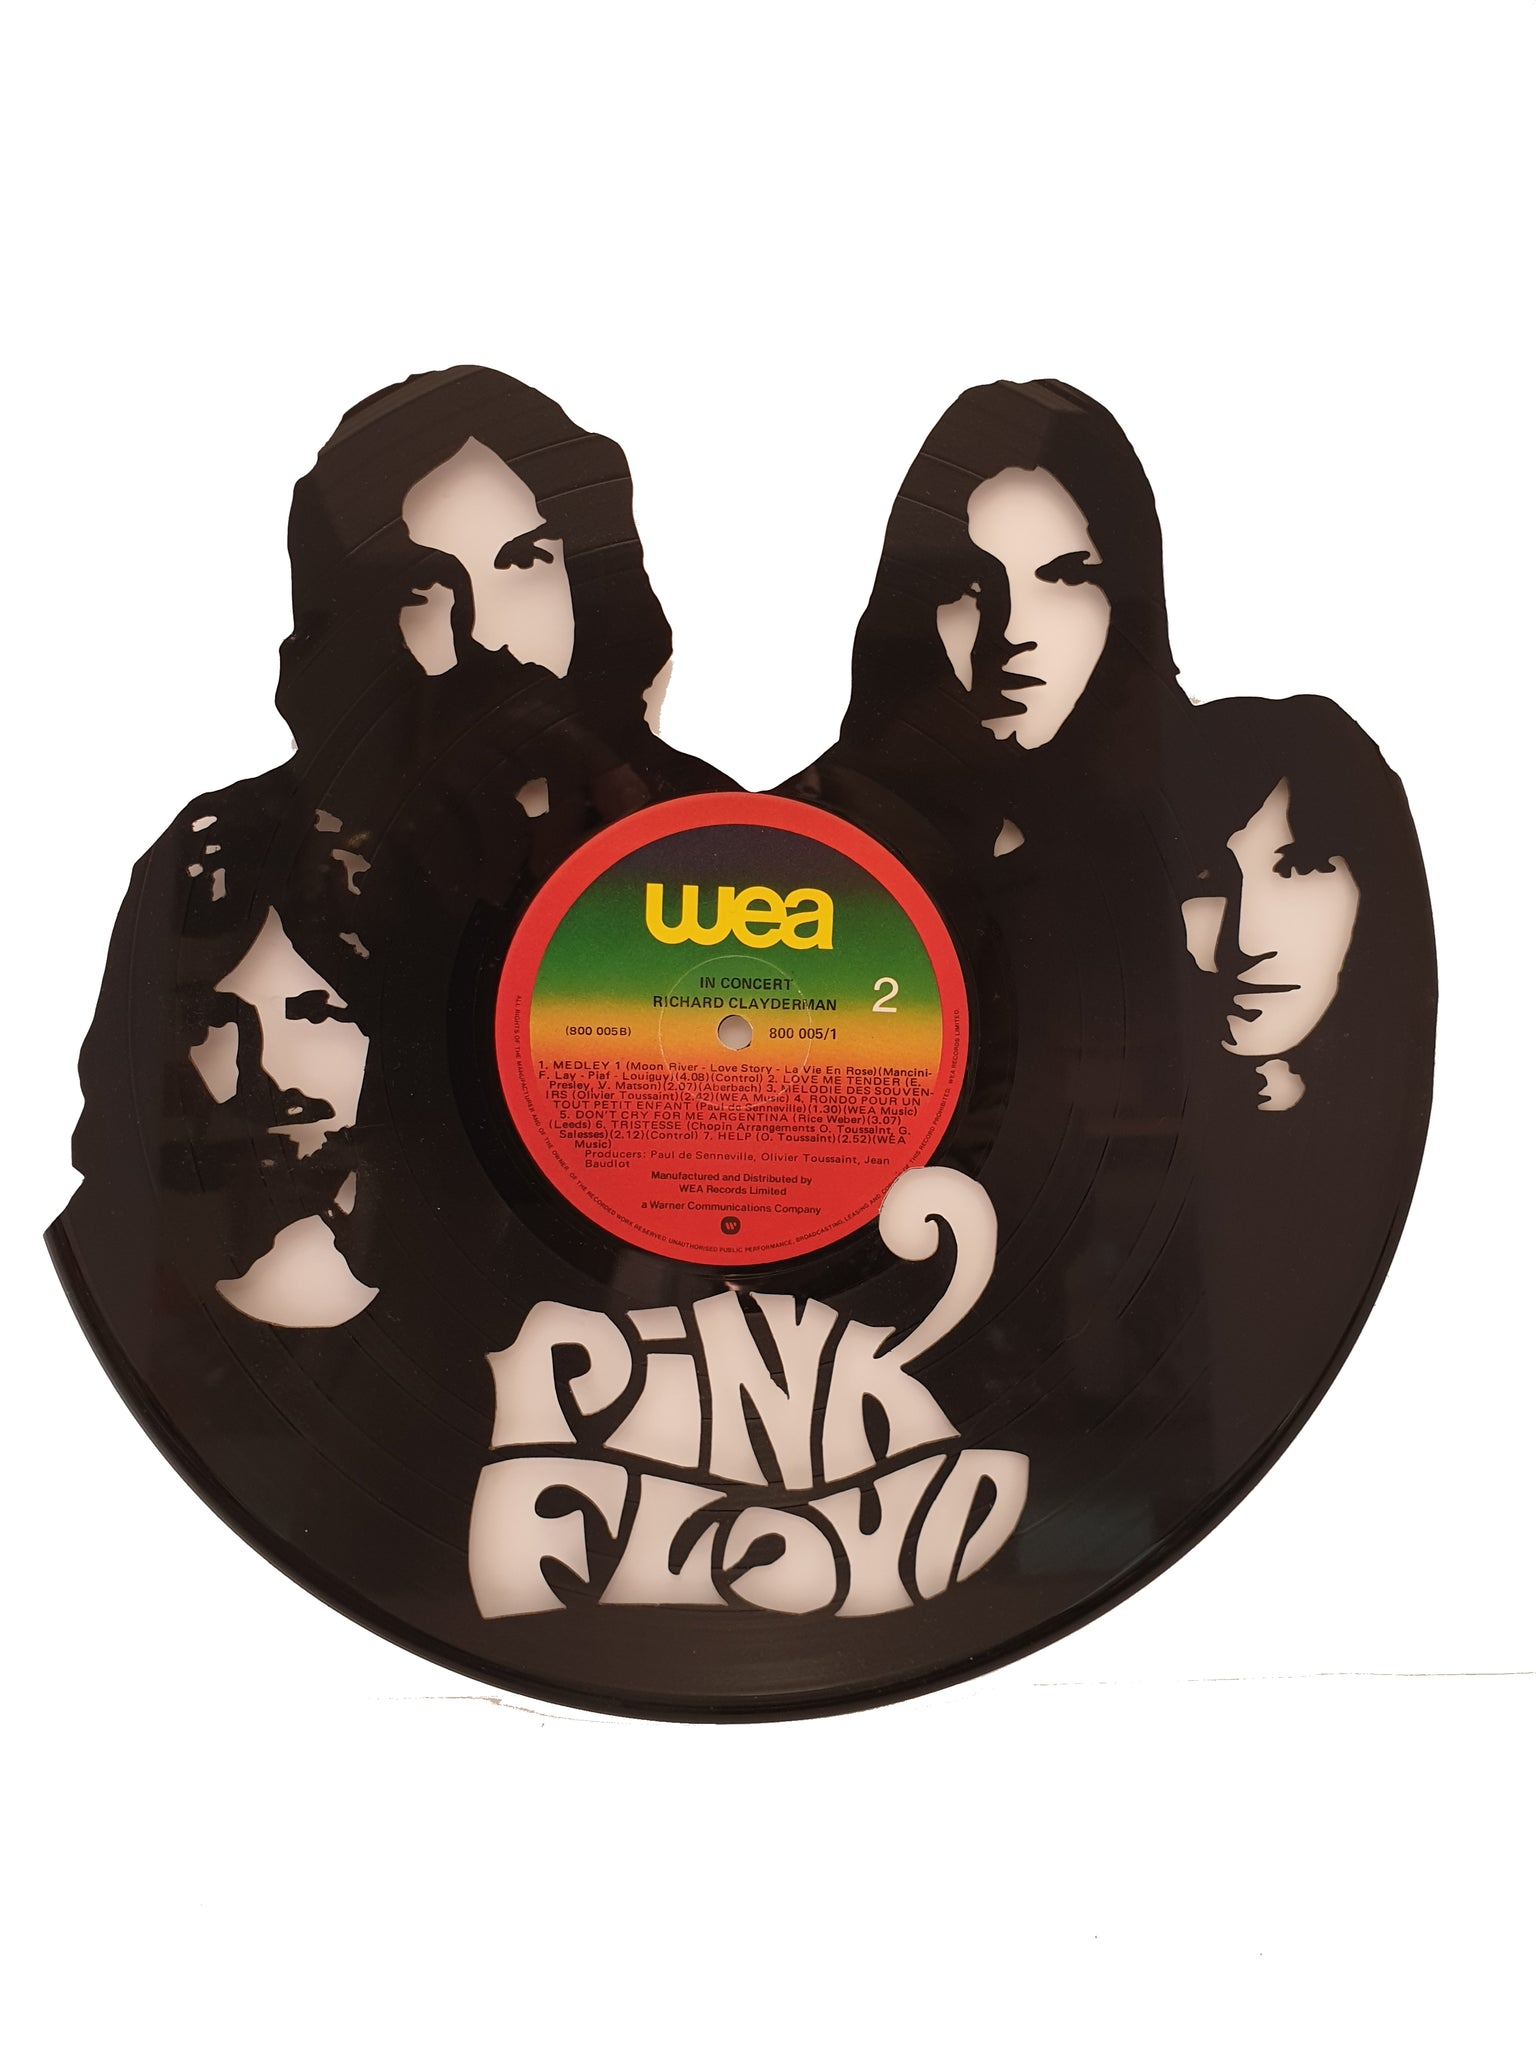 Pink Floyd Old Record